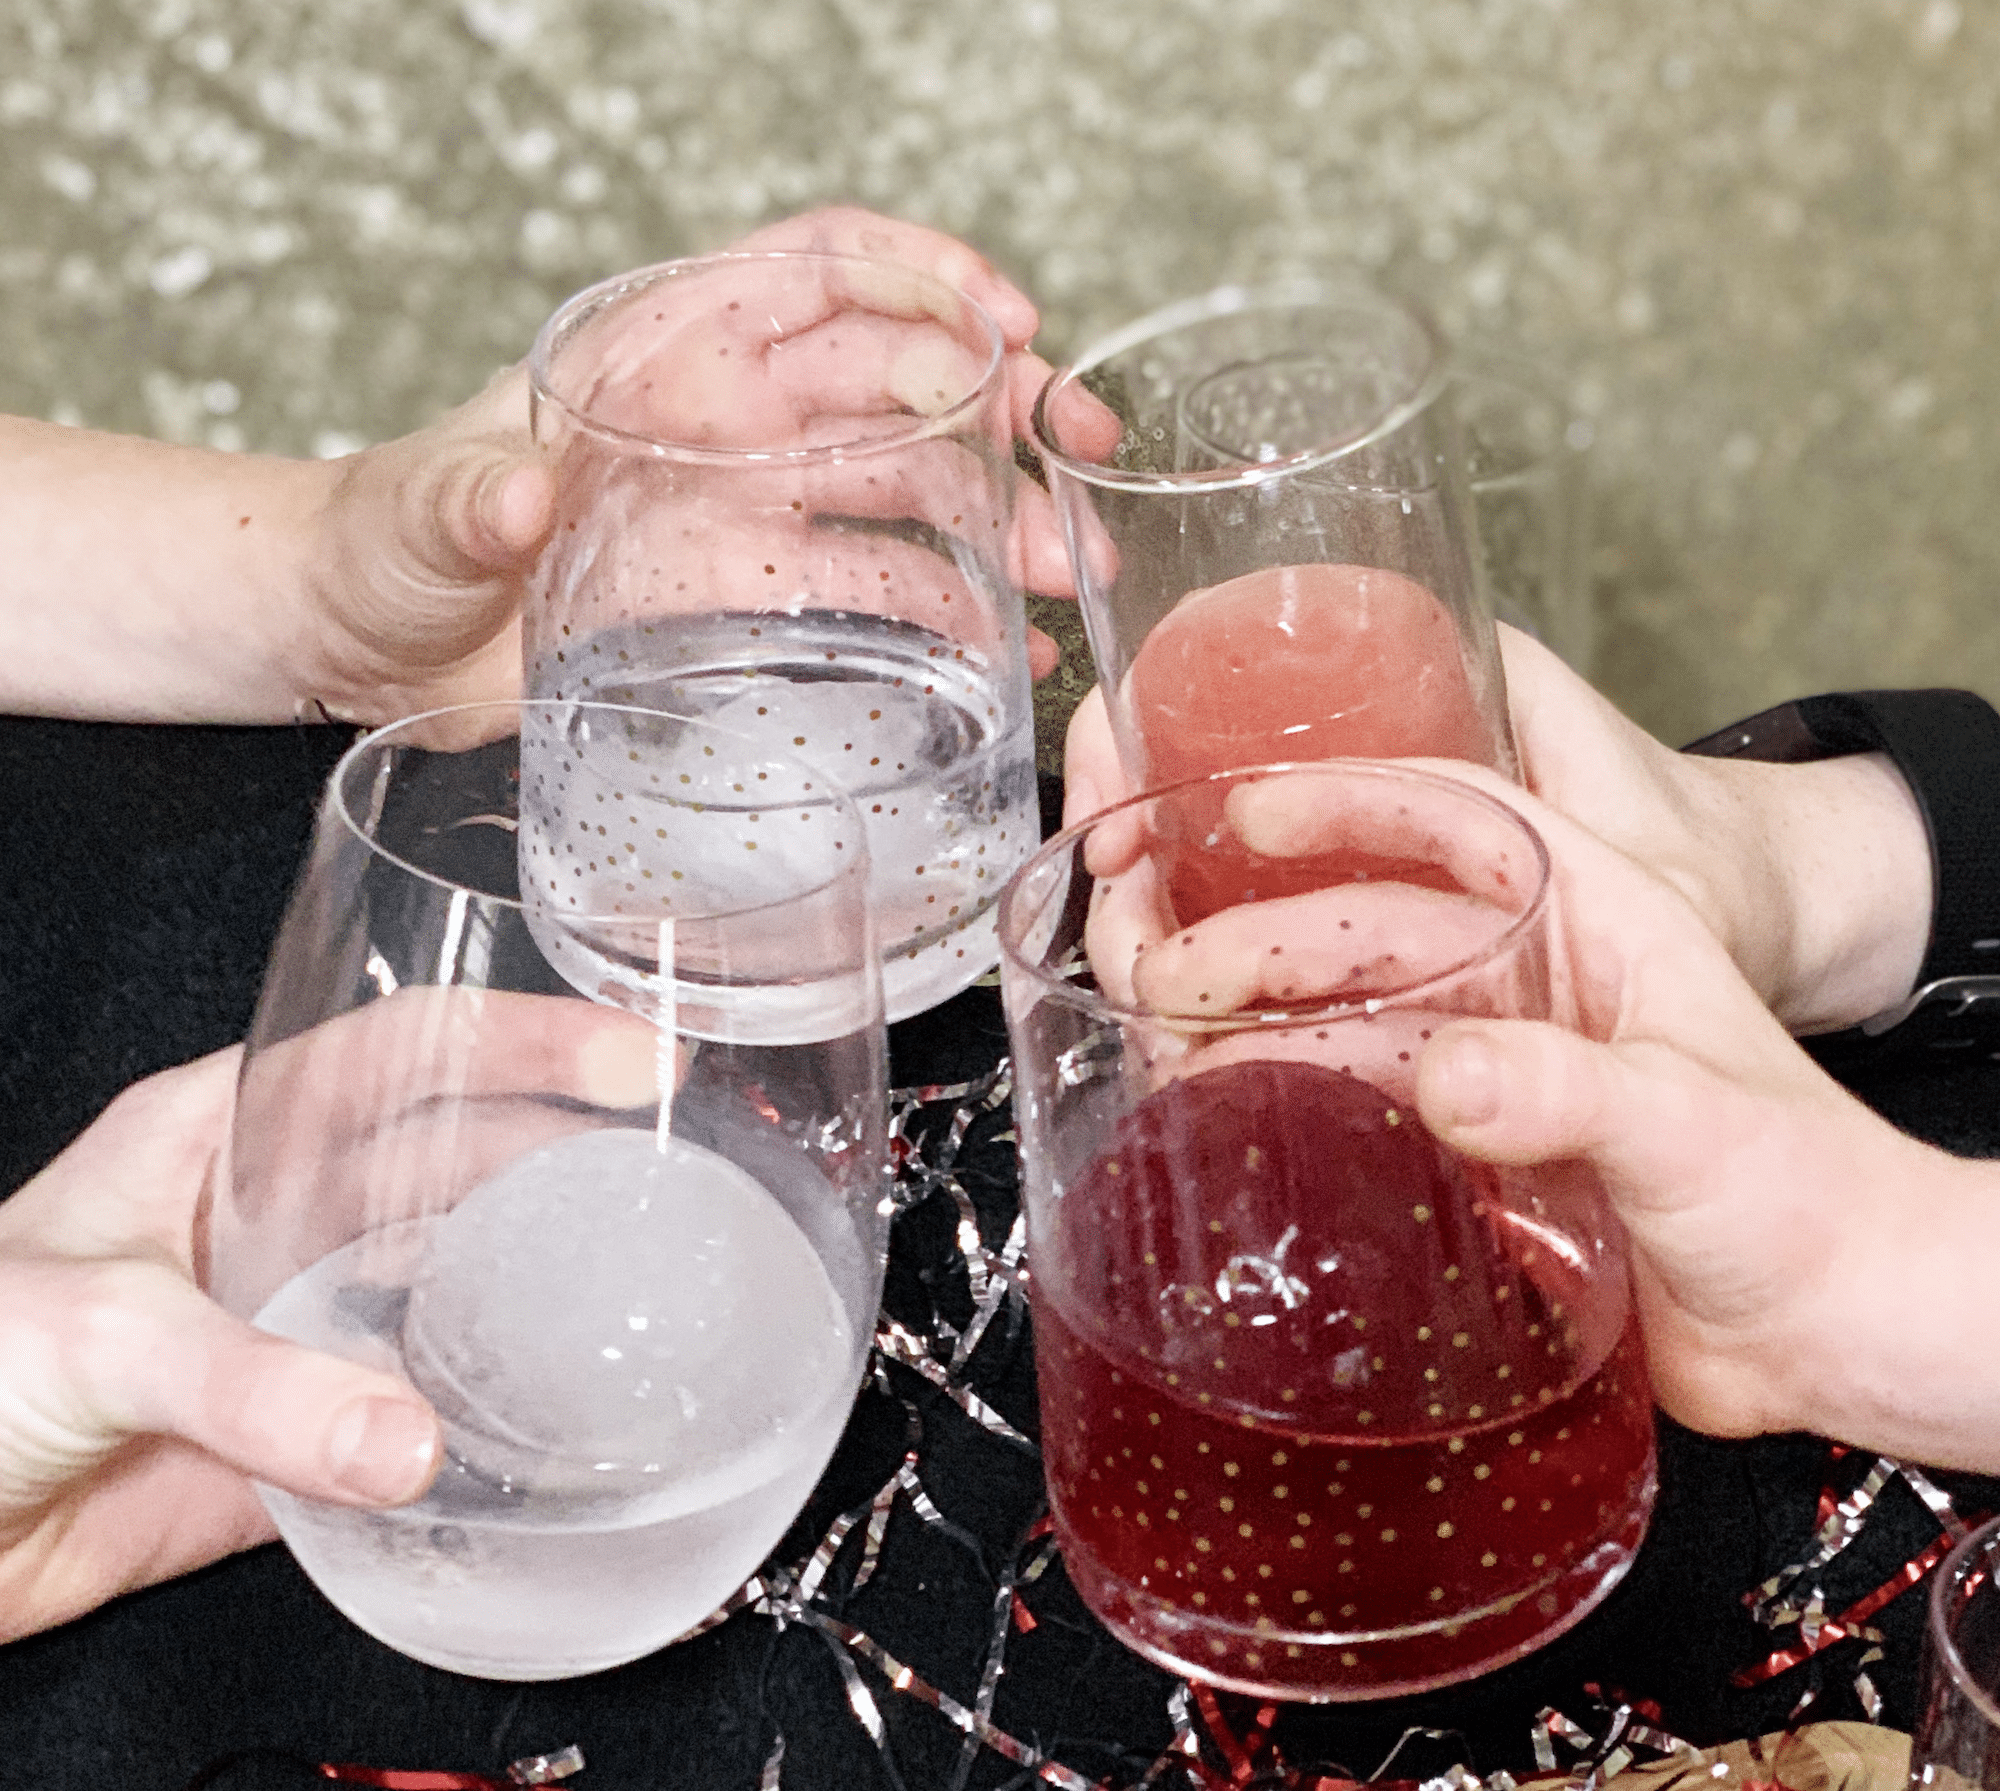 cheers with ice mold mocktails